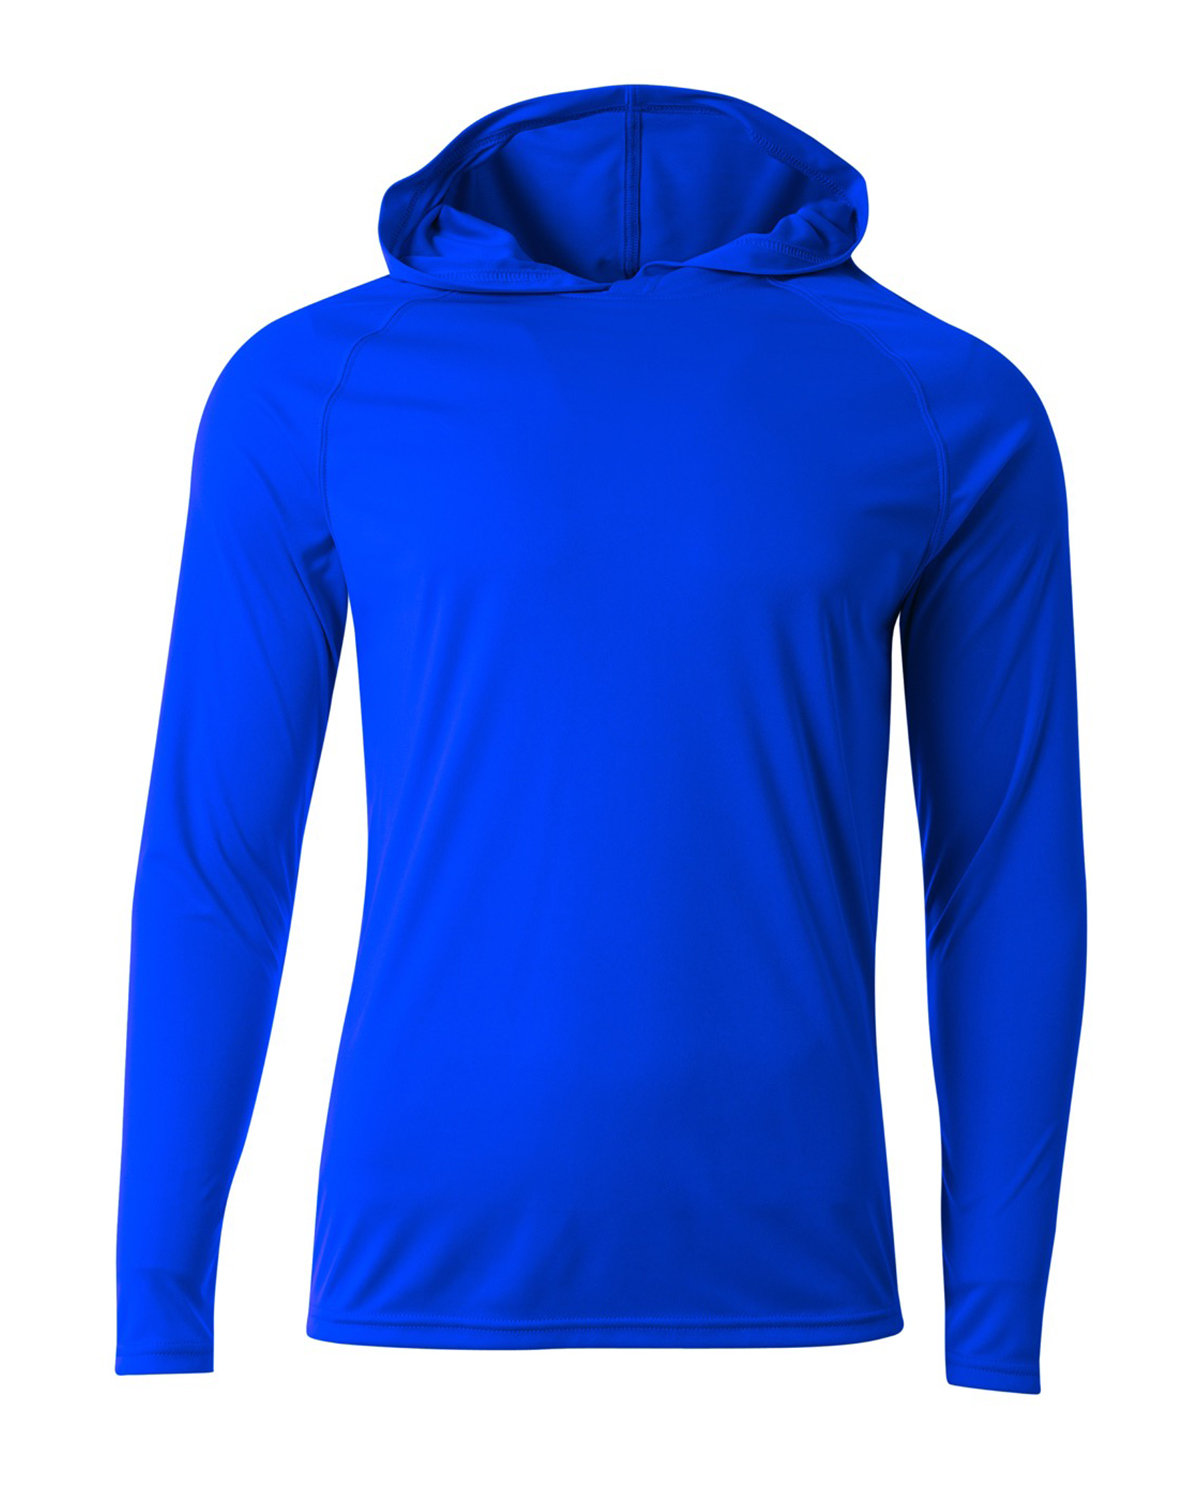 A4 Men's Cooling Performance Long-Sleeve Hooded T-shirt ROYAL